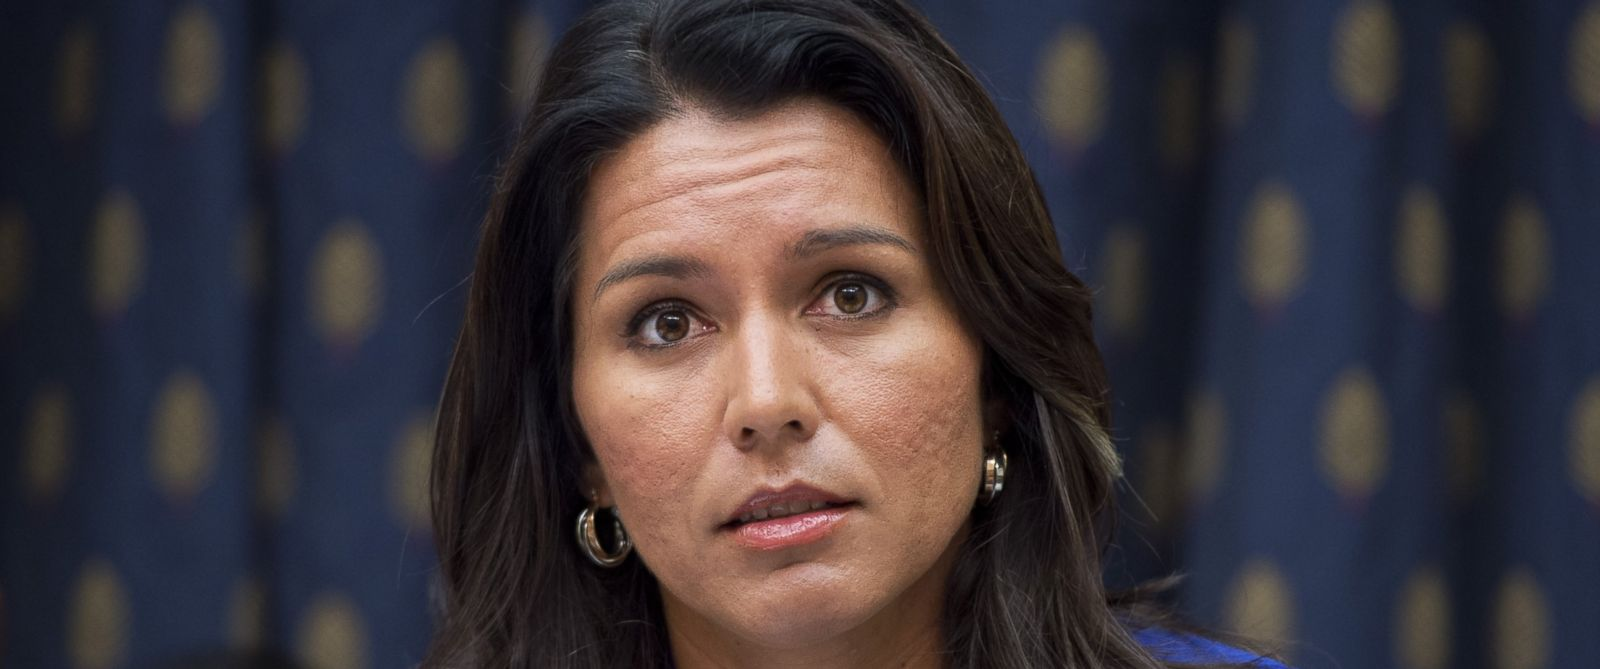 PHOTO: Rep. Tulsi Gabbard, D-Hawaii, attends a House Foreign Affairs Subcommittee on the Western Hemisphere hearing, Oct. 1, 2014, on Marine Sgt. Andrew Tahmooressi who is imprisoned in Mexico.